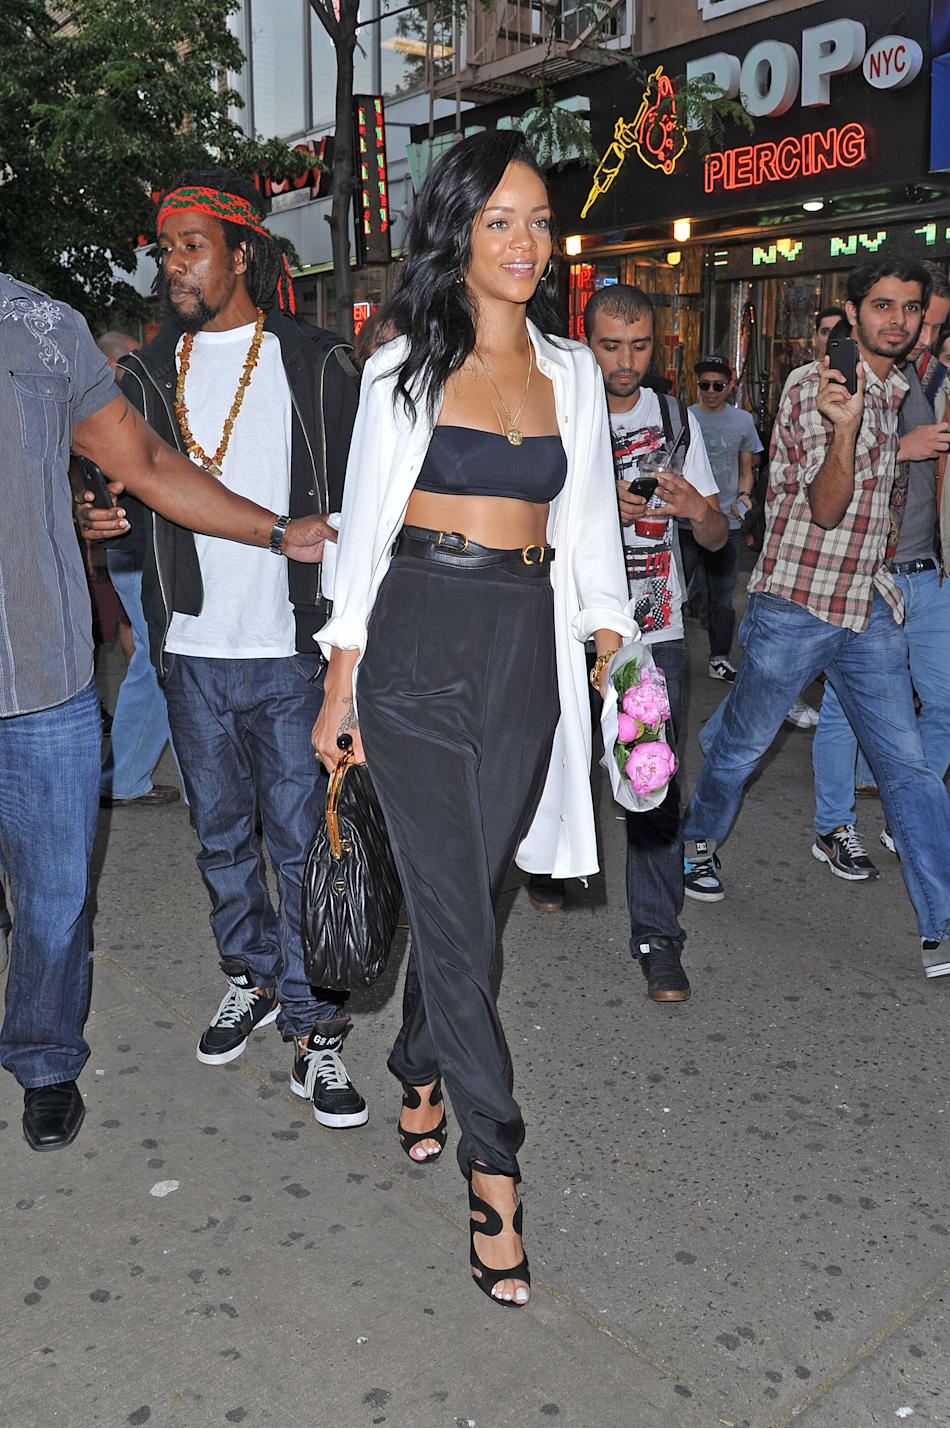 This is the year of the exposed midriff and Rihanna has taken to exposing the upper quadrant of her abs with glee. (Who wouldn't?) Turning more than a few heads in NYC's Greenwich Village, she pairs a